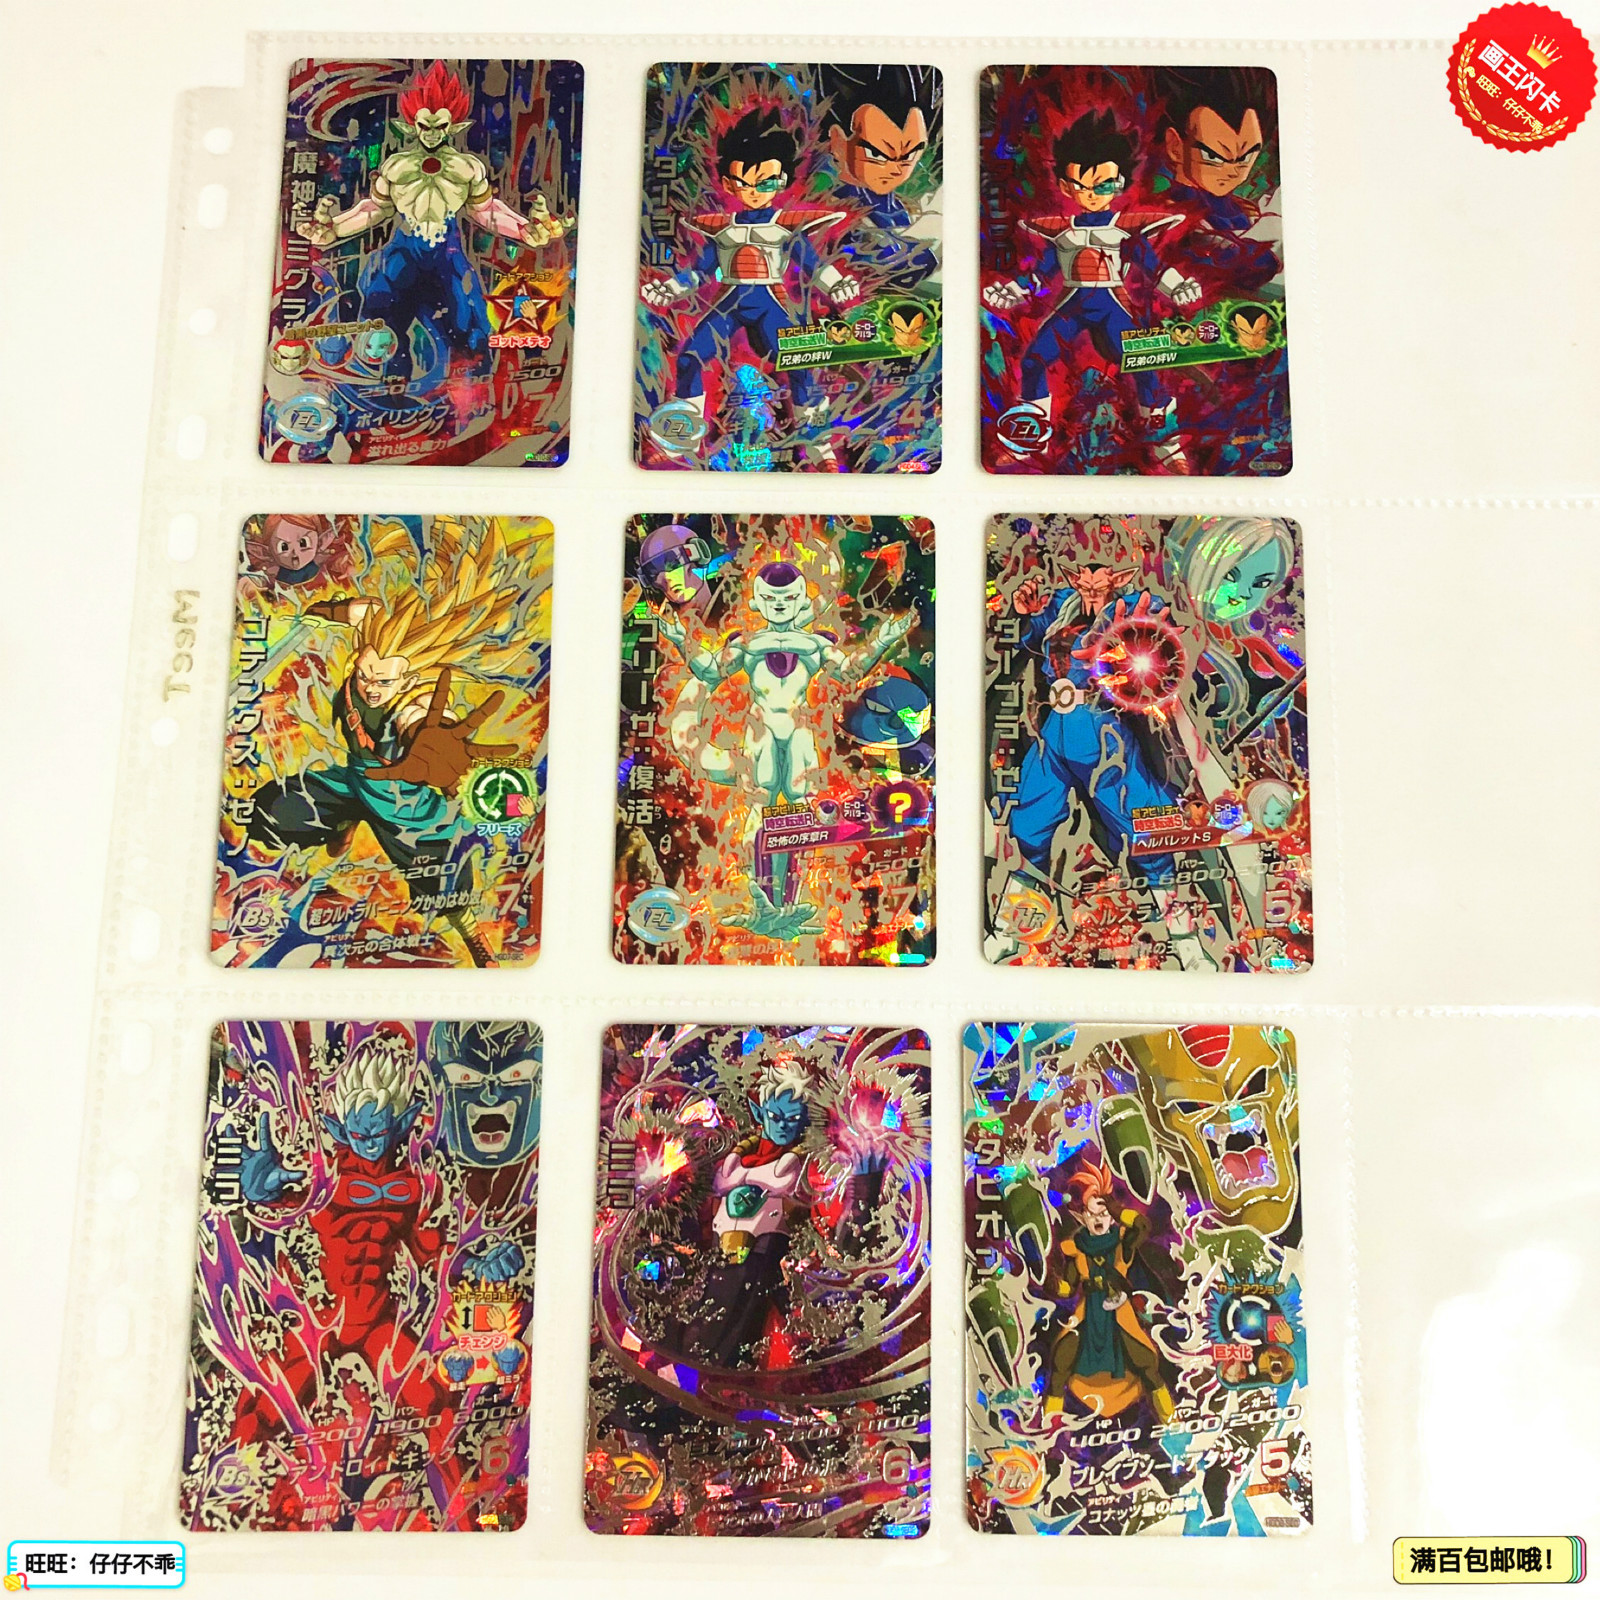 Japan Original Dragon Ball Hero Card SEC 4 Stars HGD Goku Toys Hobbies Collectibles Game Collection Anime Cards